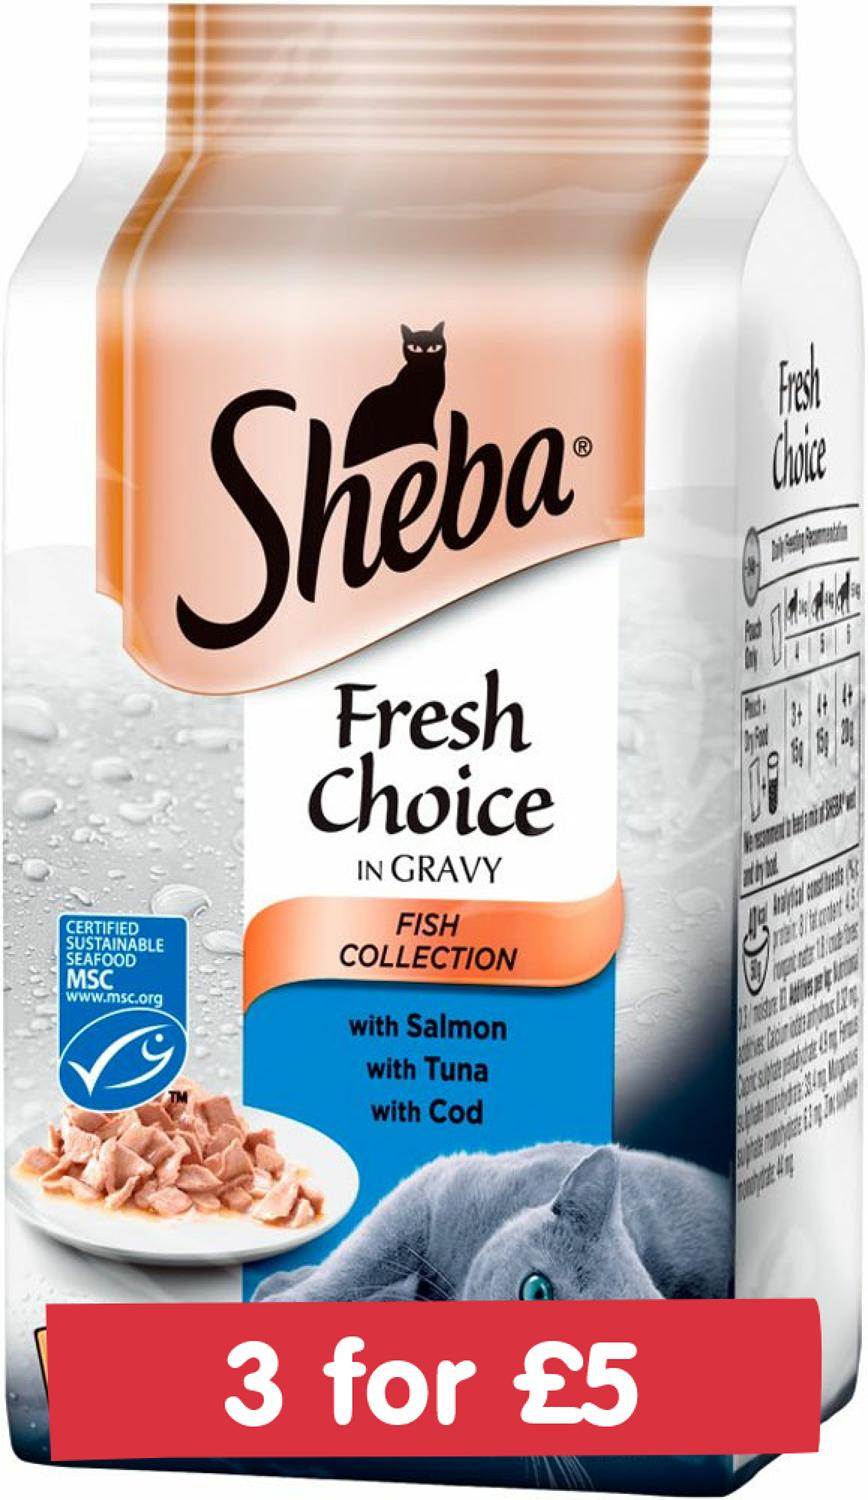 Sheba Fresh Choice Fish In Gravy 6x50g